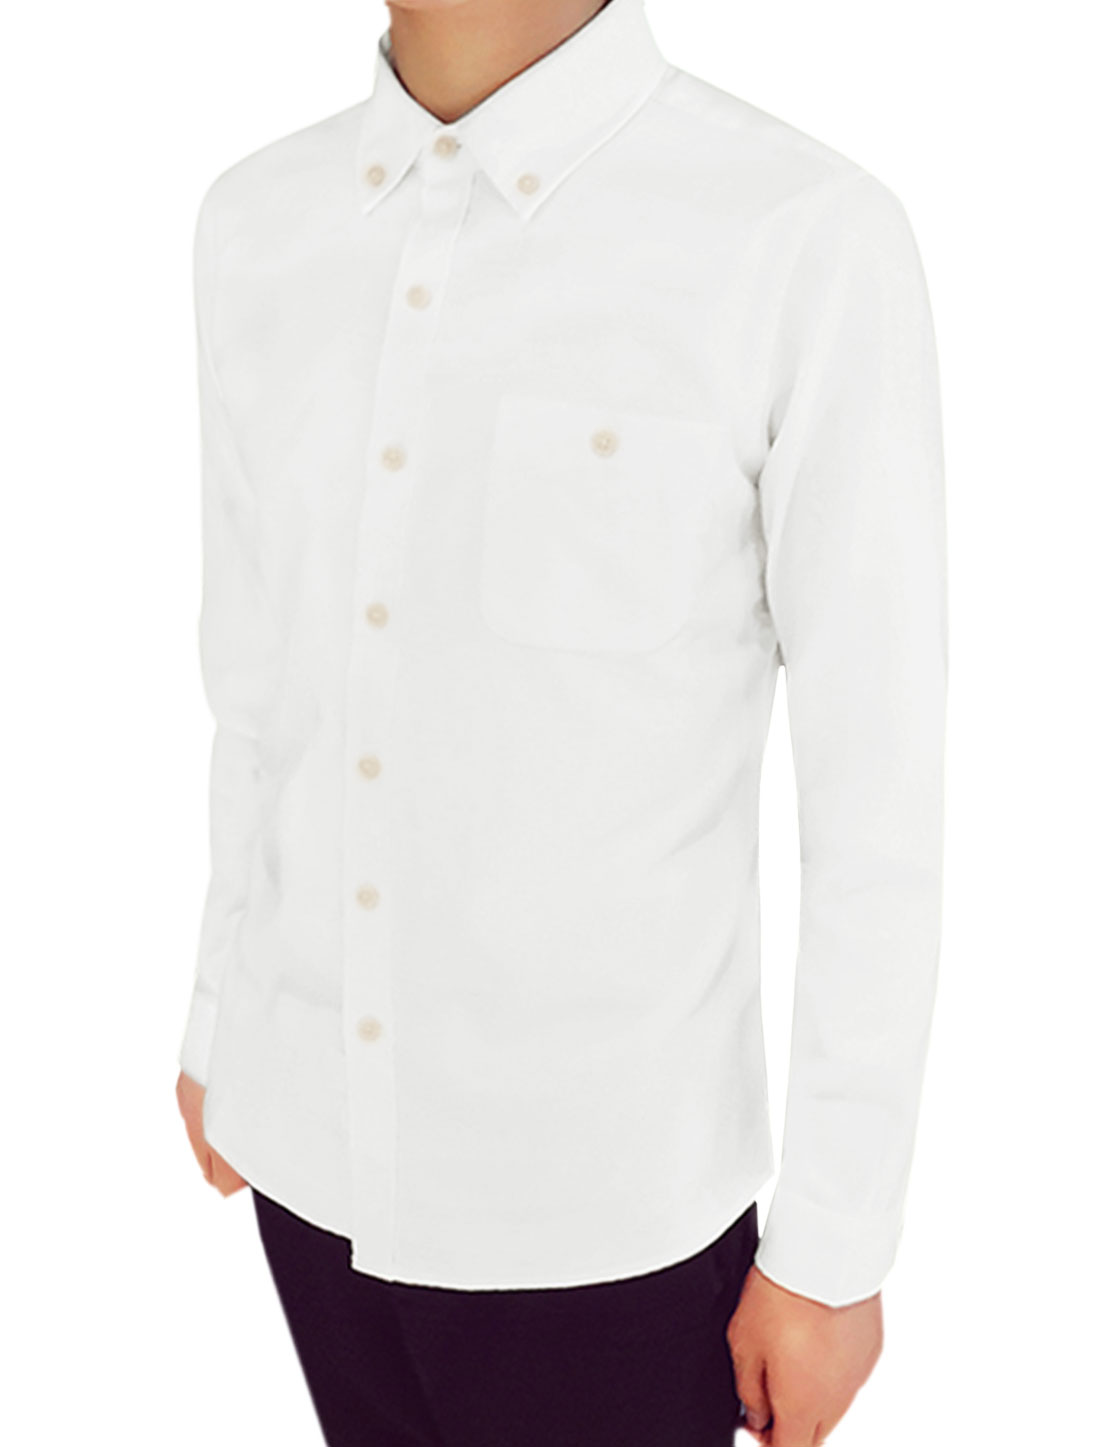 Men Long Sleeves Chest Pocket Button Closure Casual Shirt White M